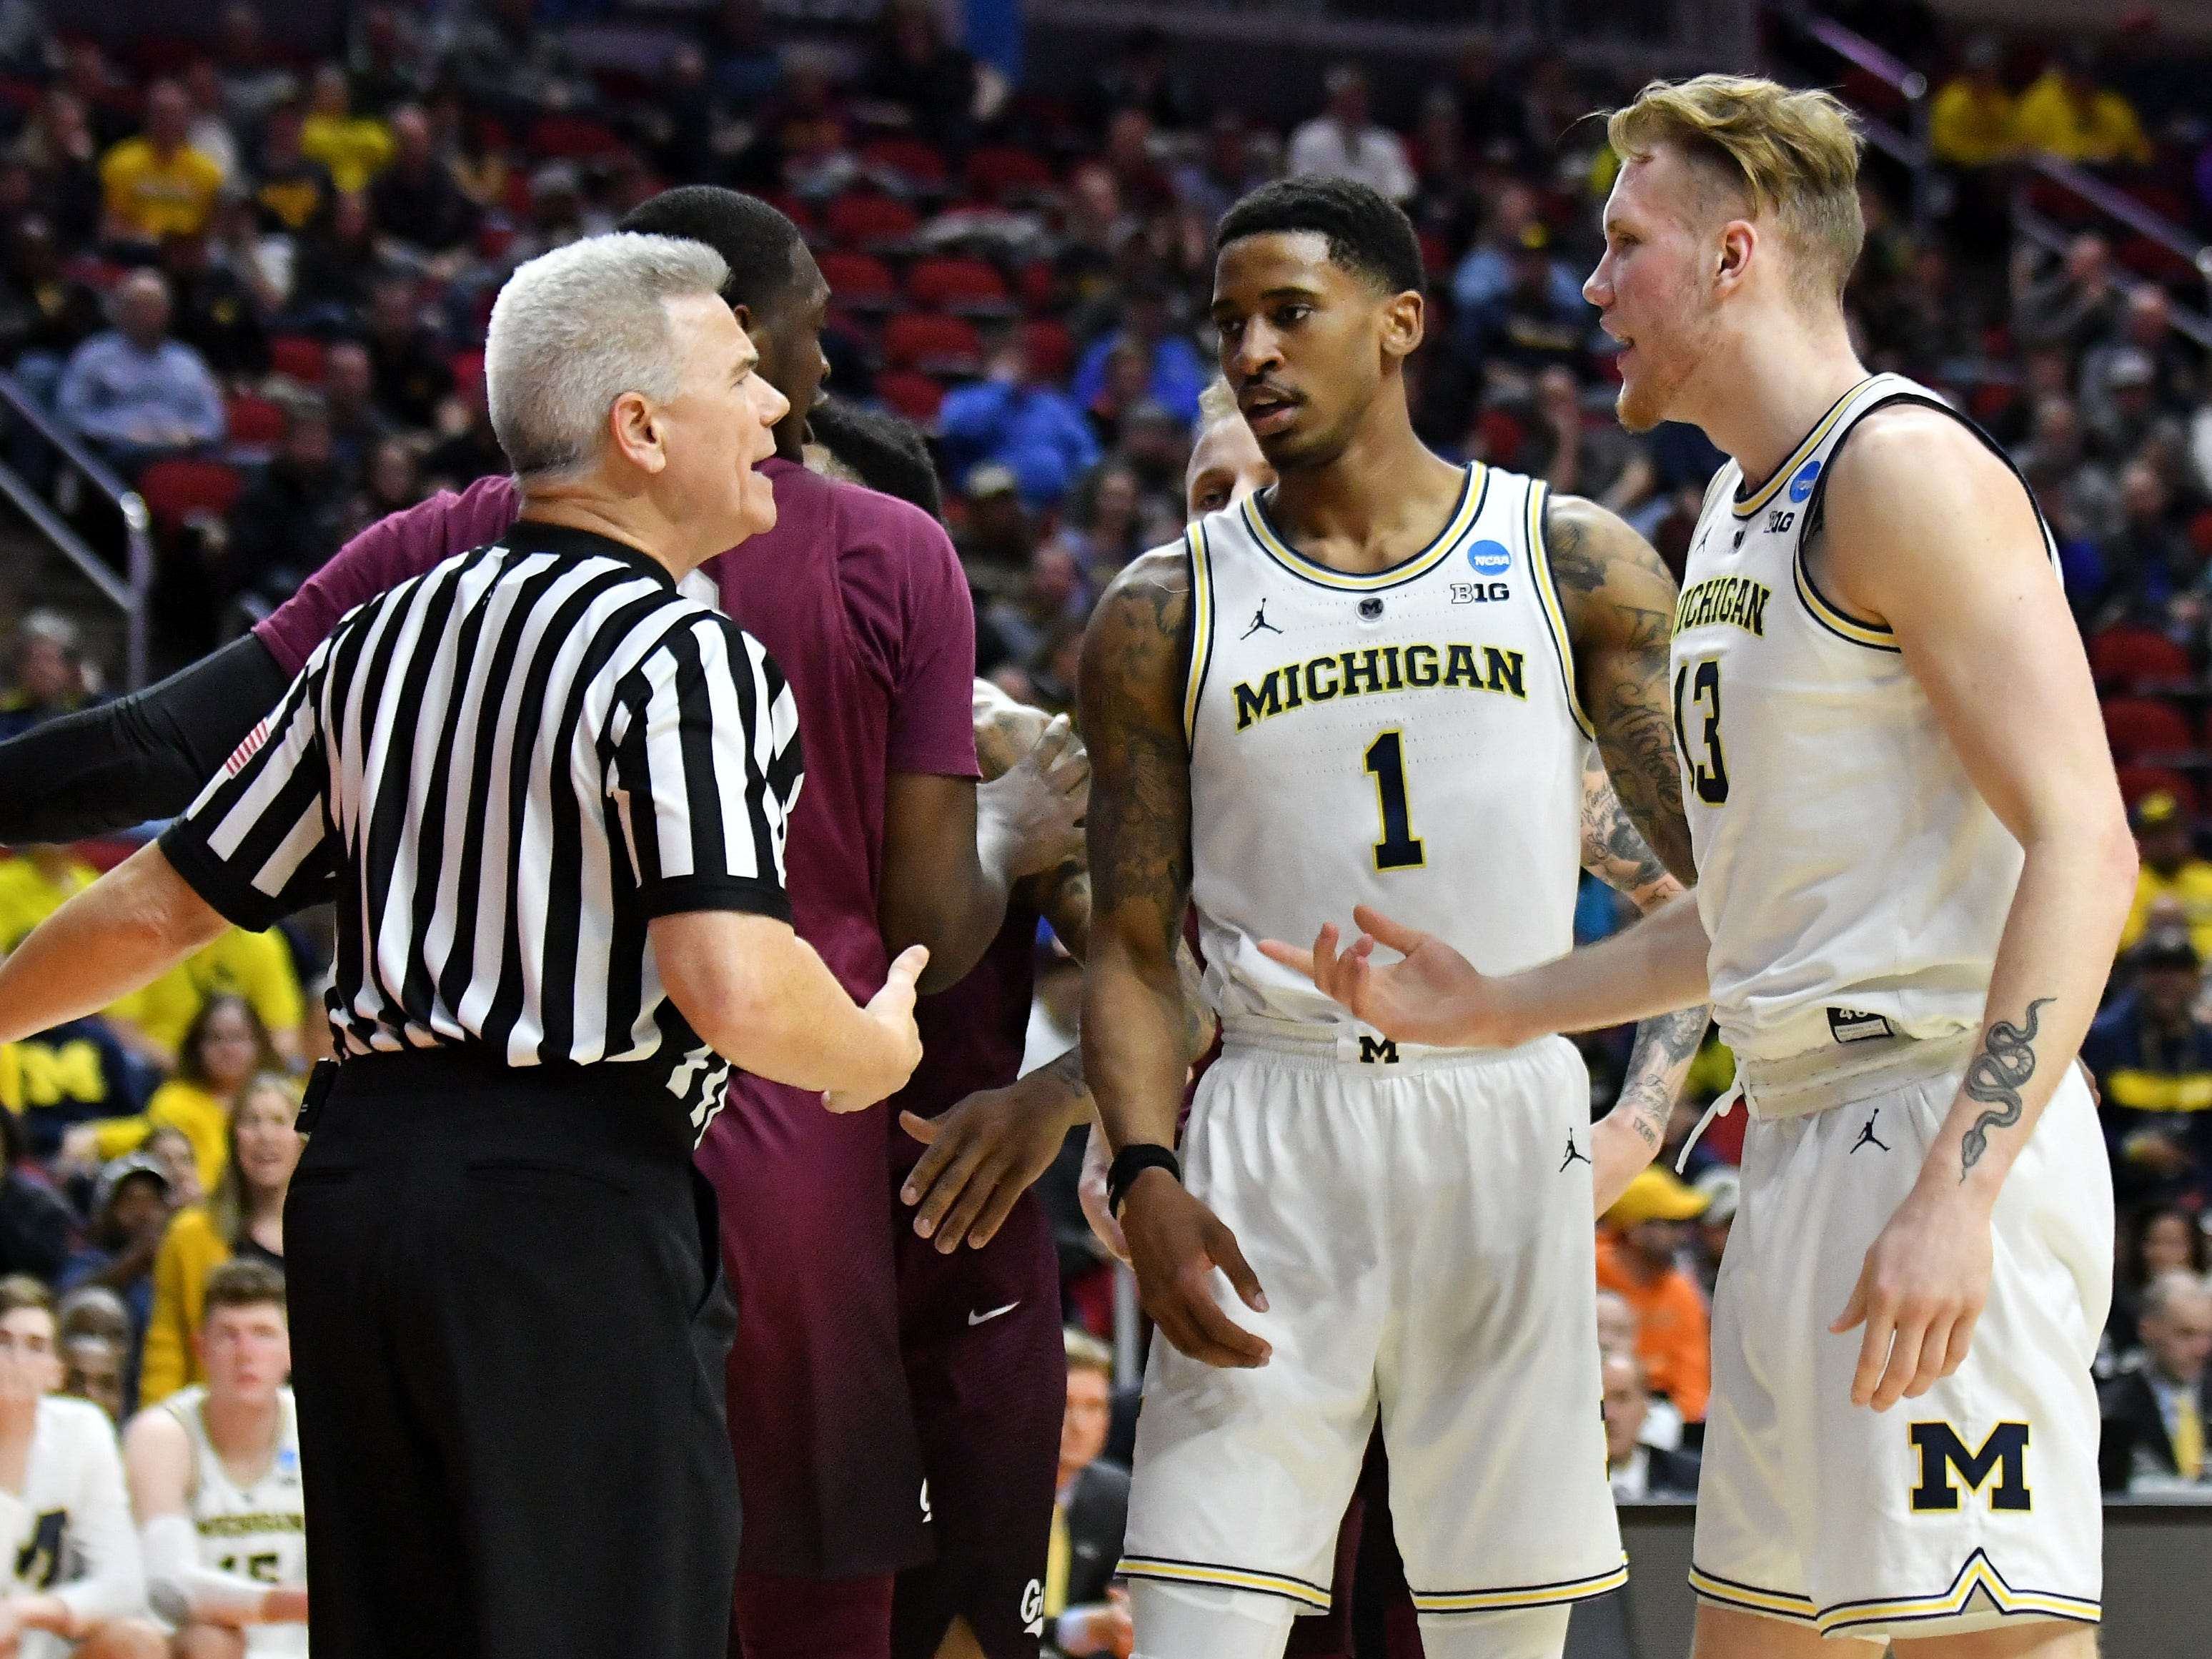 An official keeps things calm between Michigan's Charles Matthews (1)  Ignas Brazdeikis (13) and Montana players in the second half.